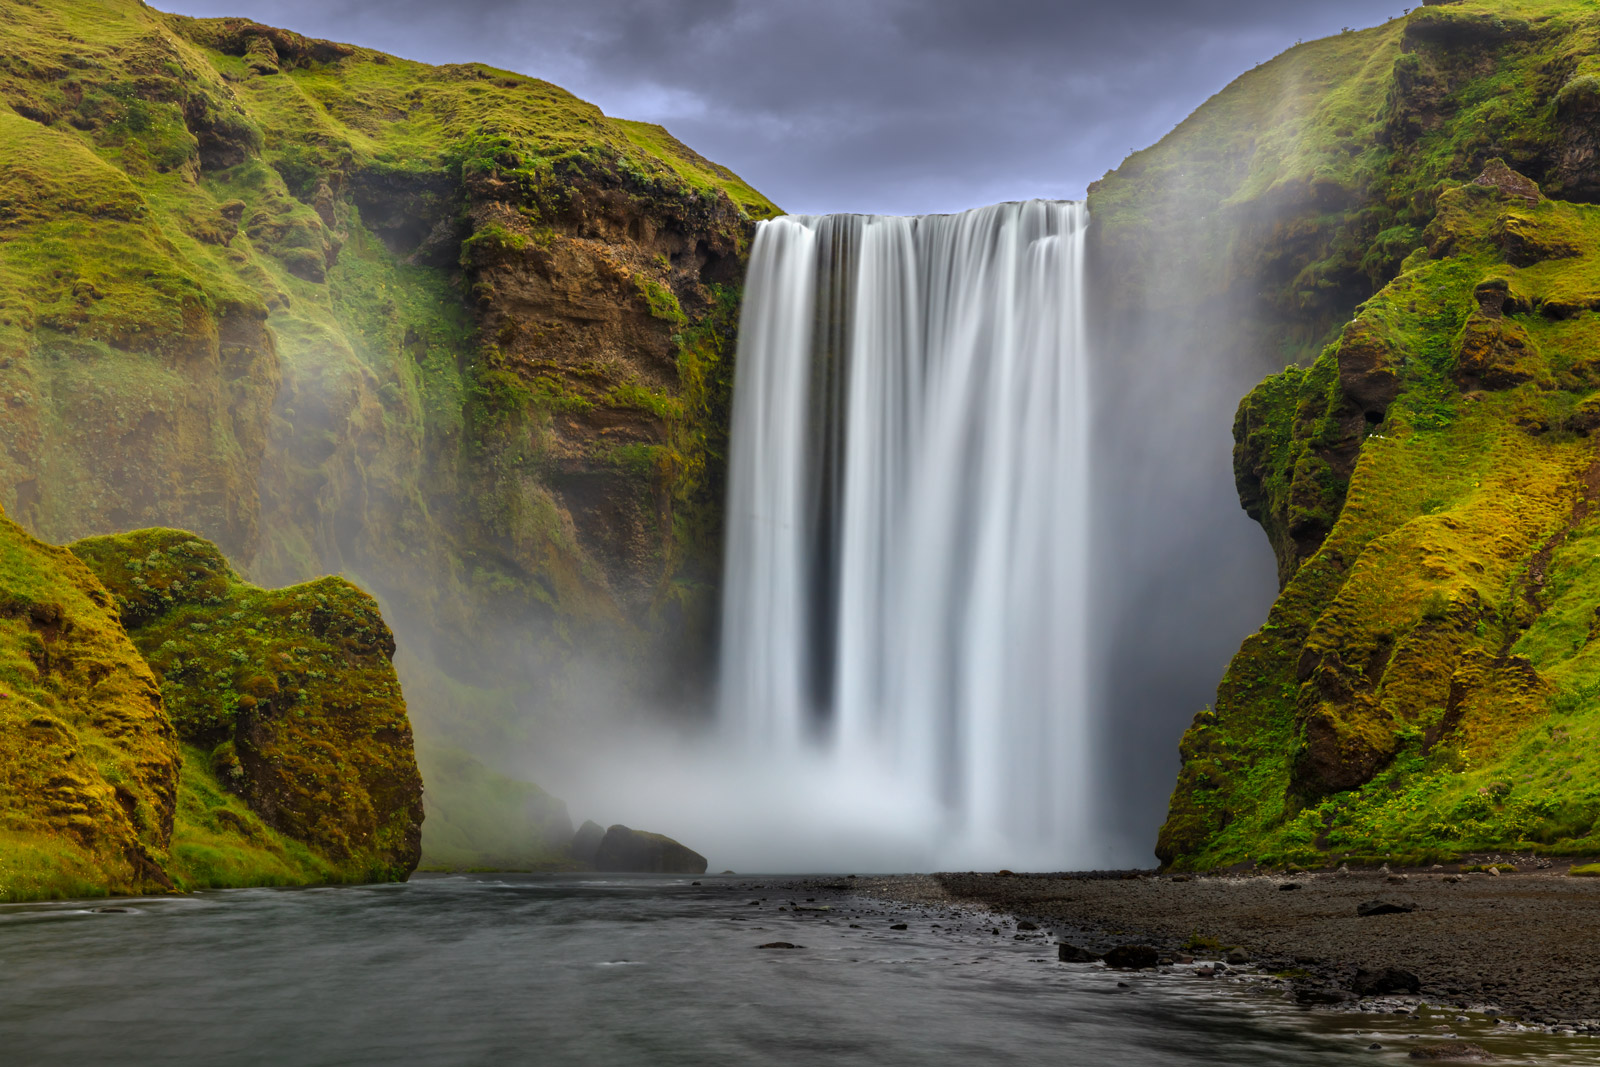 iceland, waterfall, skogafoss, limited edition, photograph, fine art, landscape, photo